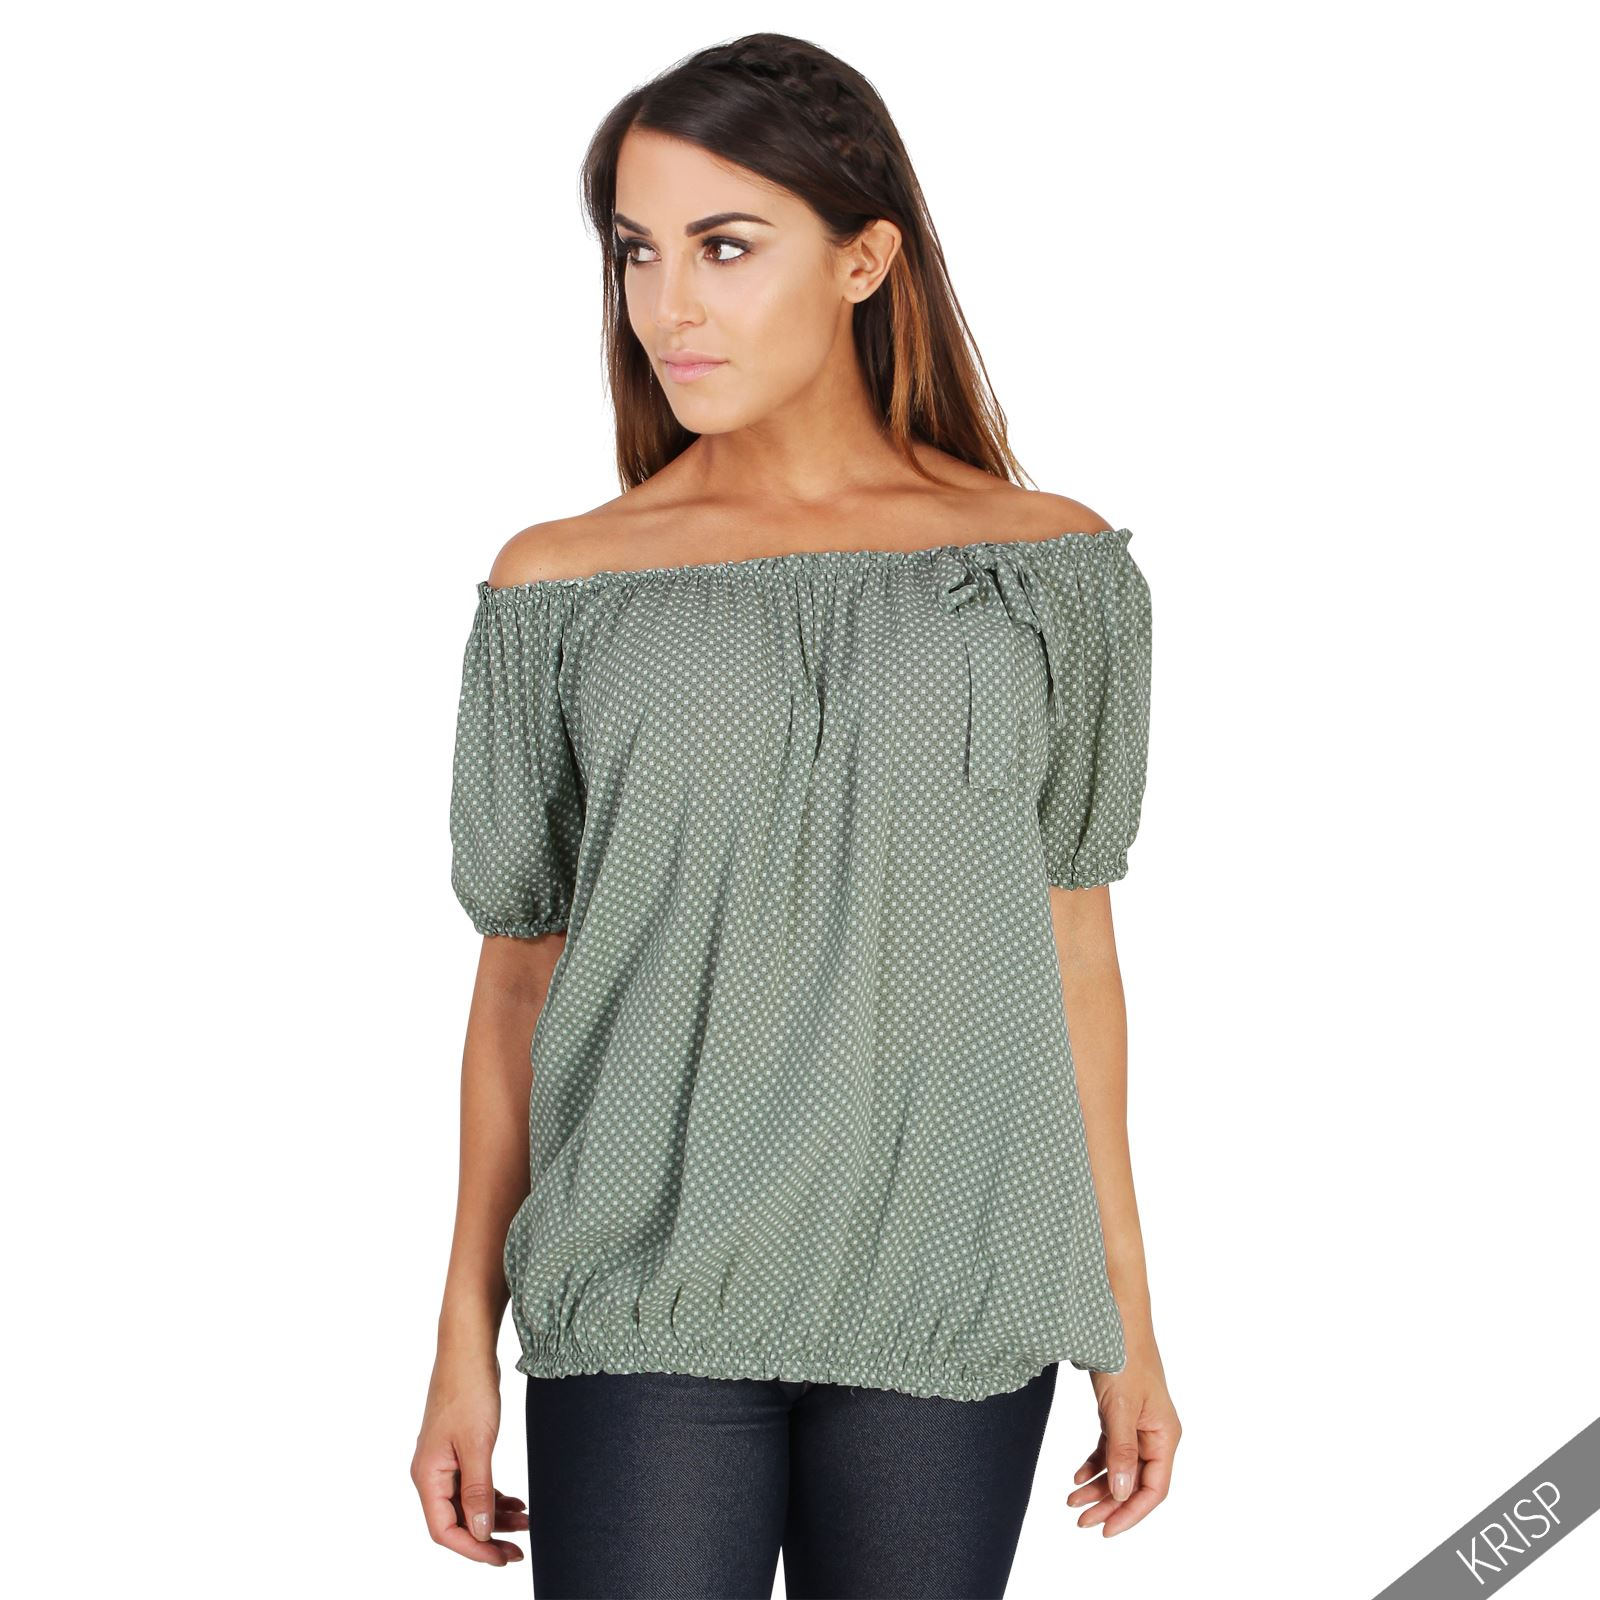 damen leichte gemusterte bluse oversize fit ballonbluse t shirt top kurzarm ebay. Black Bedroom Furniture Sets. Home Design Ideas